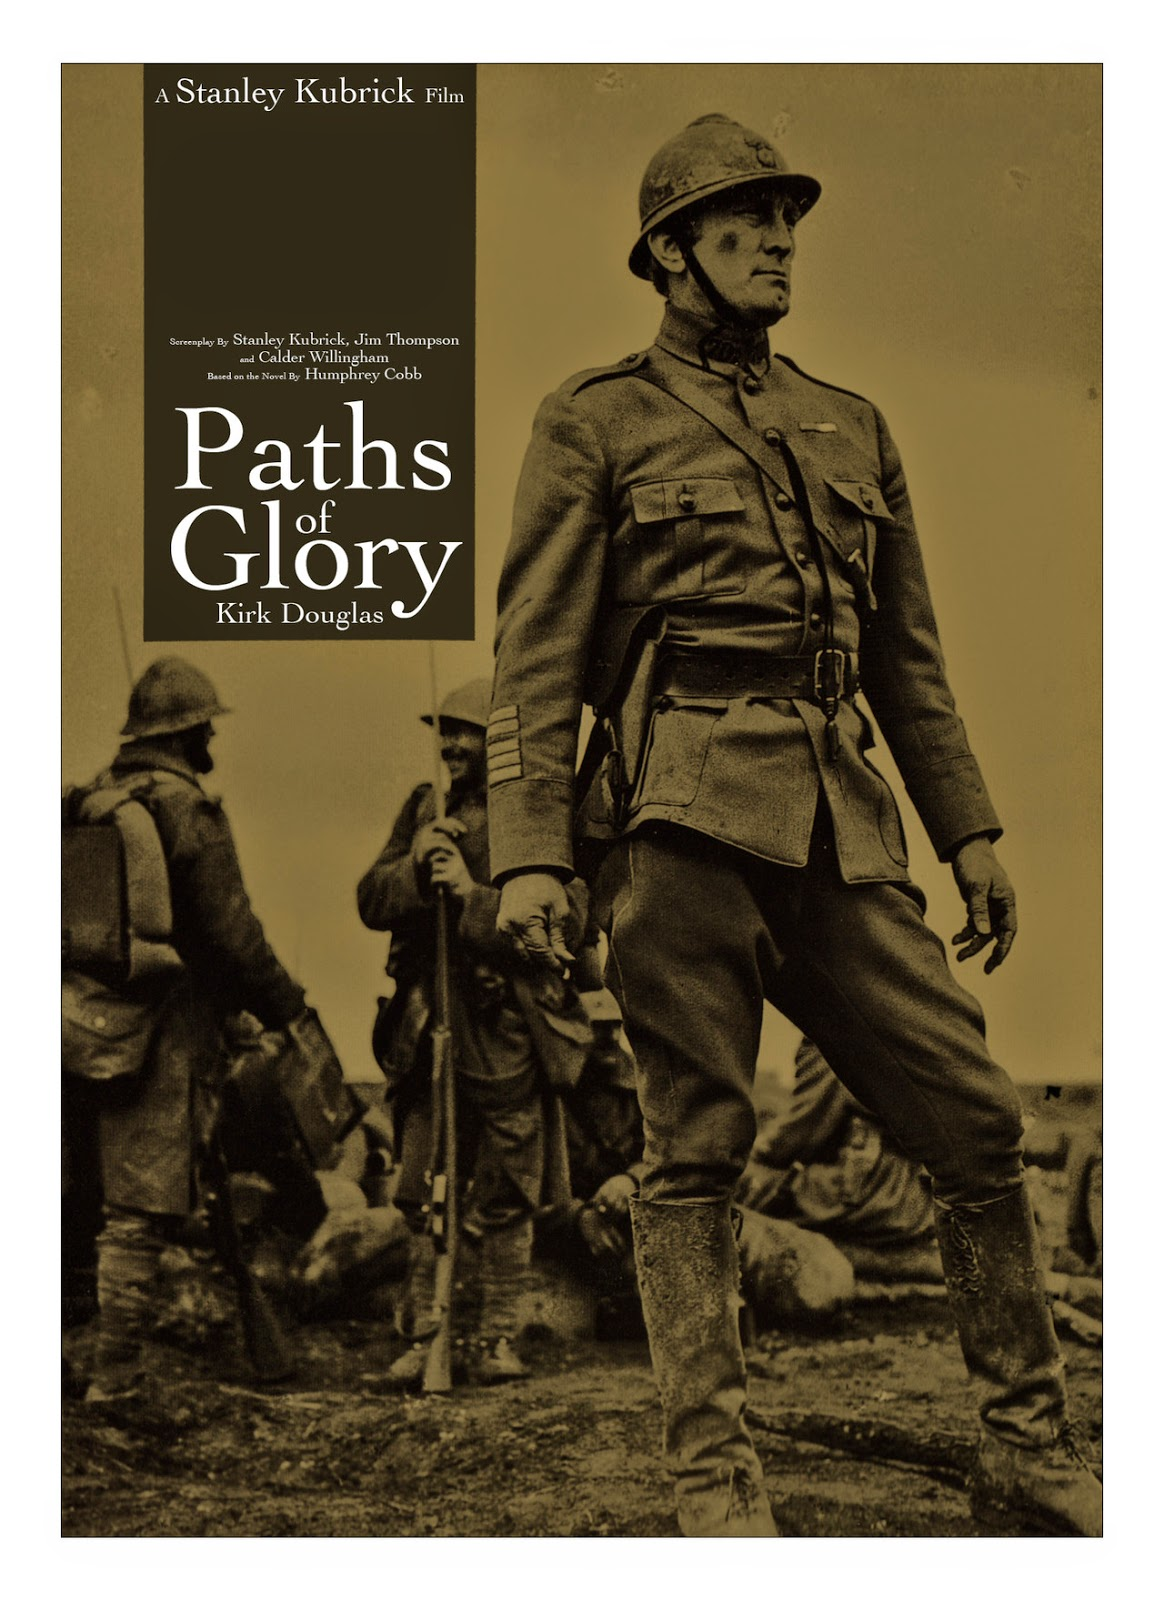 paths of glory vs all quiet on the western front essay 'paths of glory,' like 'all quiet on the western front,' was written by someone who actually survived that war published in 1935, five year paths of justification i suspect that many people who are familiar with stanley kubrick's classic film 'paths of glory' are unaware that it was based upon a novel by an author who is mostly forgotten.